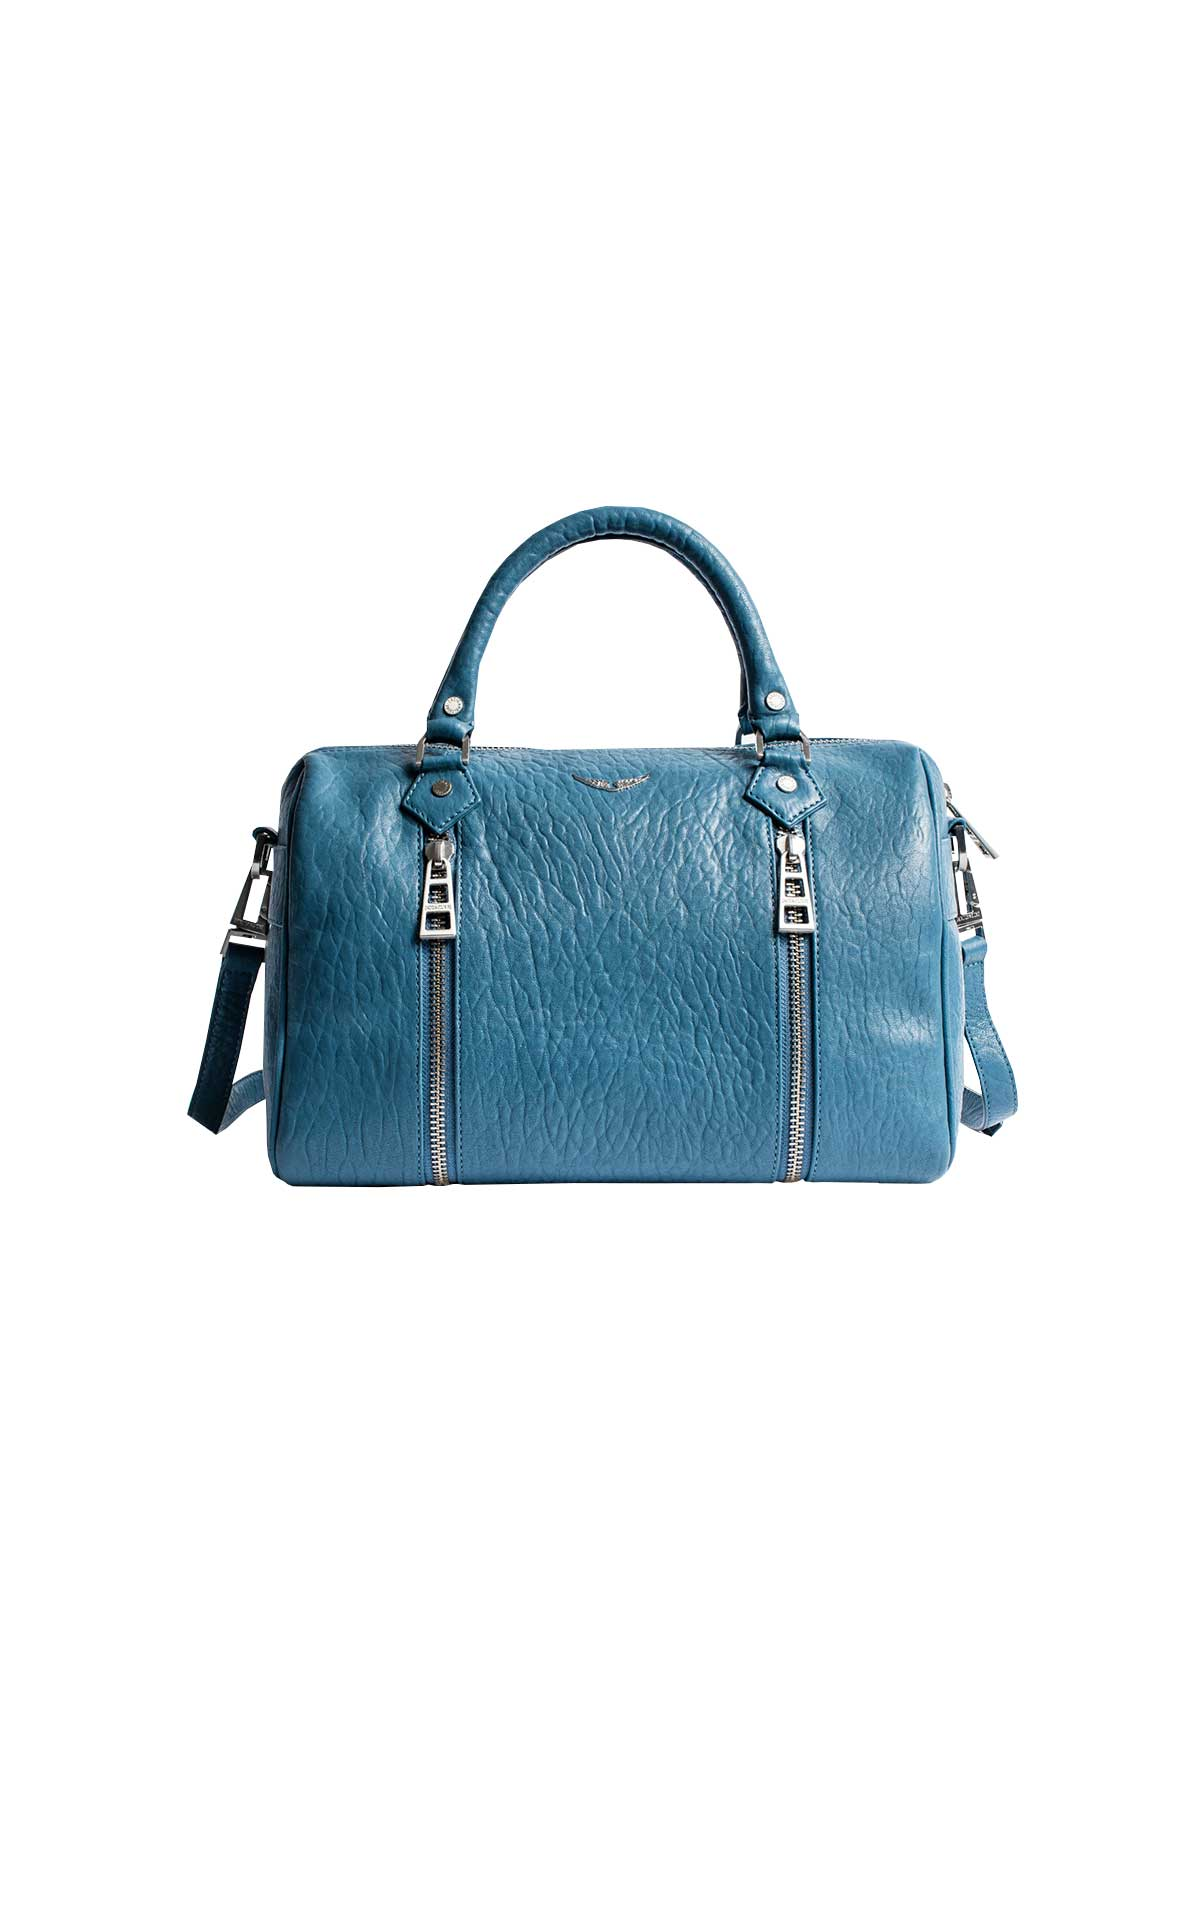 Blue leather bag Zadig & Voltaire